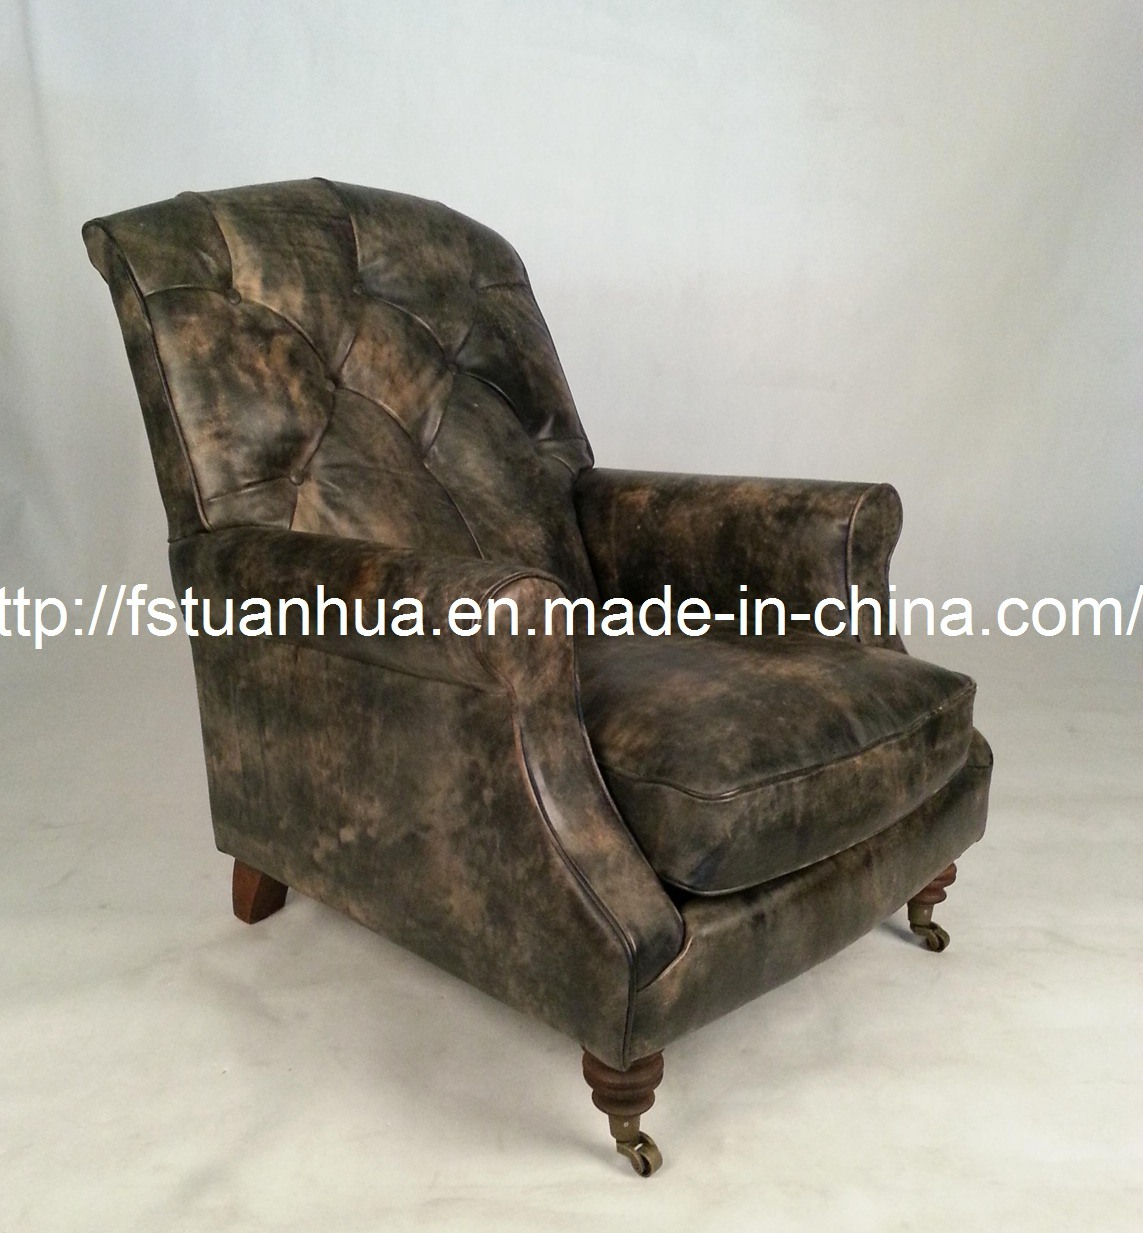 China Otobi Furniture In Bangladesh Price Set (TH749)   China Otobi  Furniture, Sofa Designs